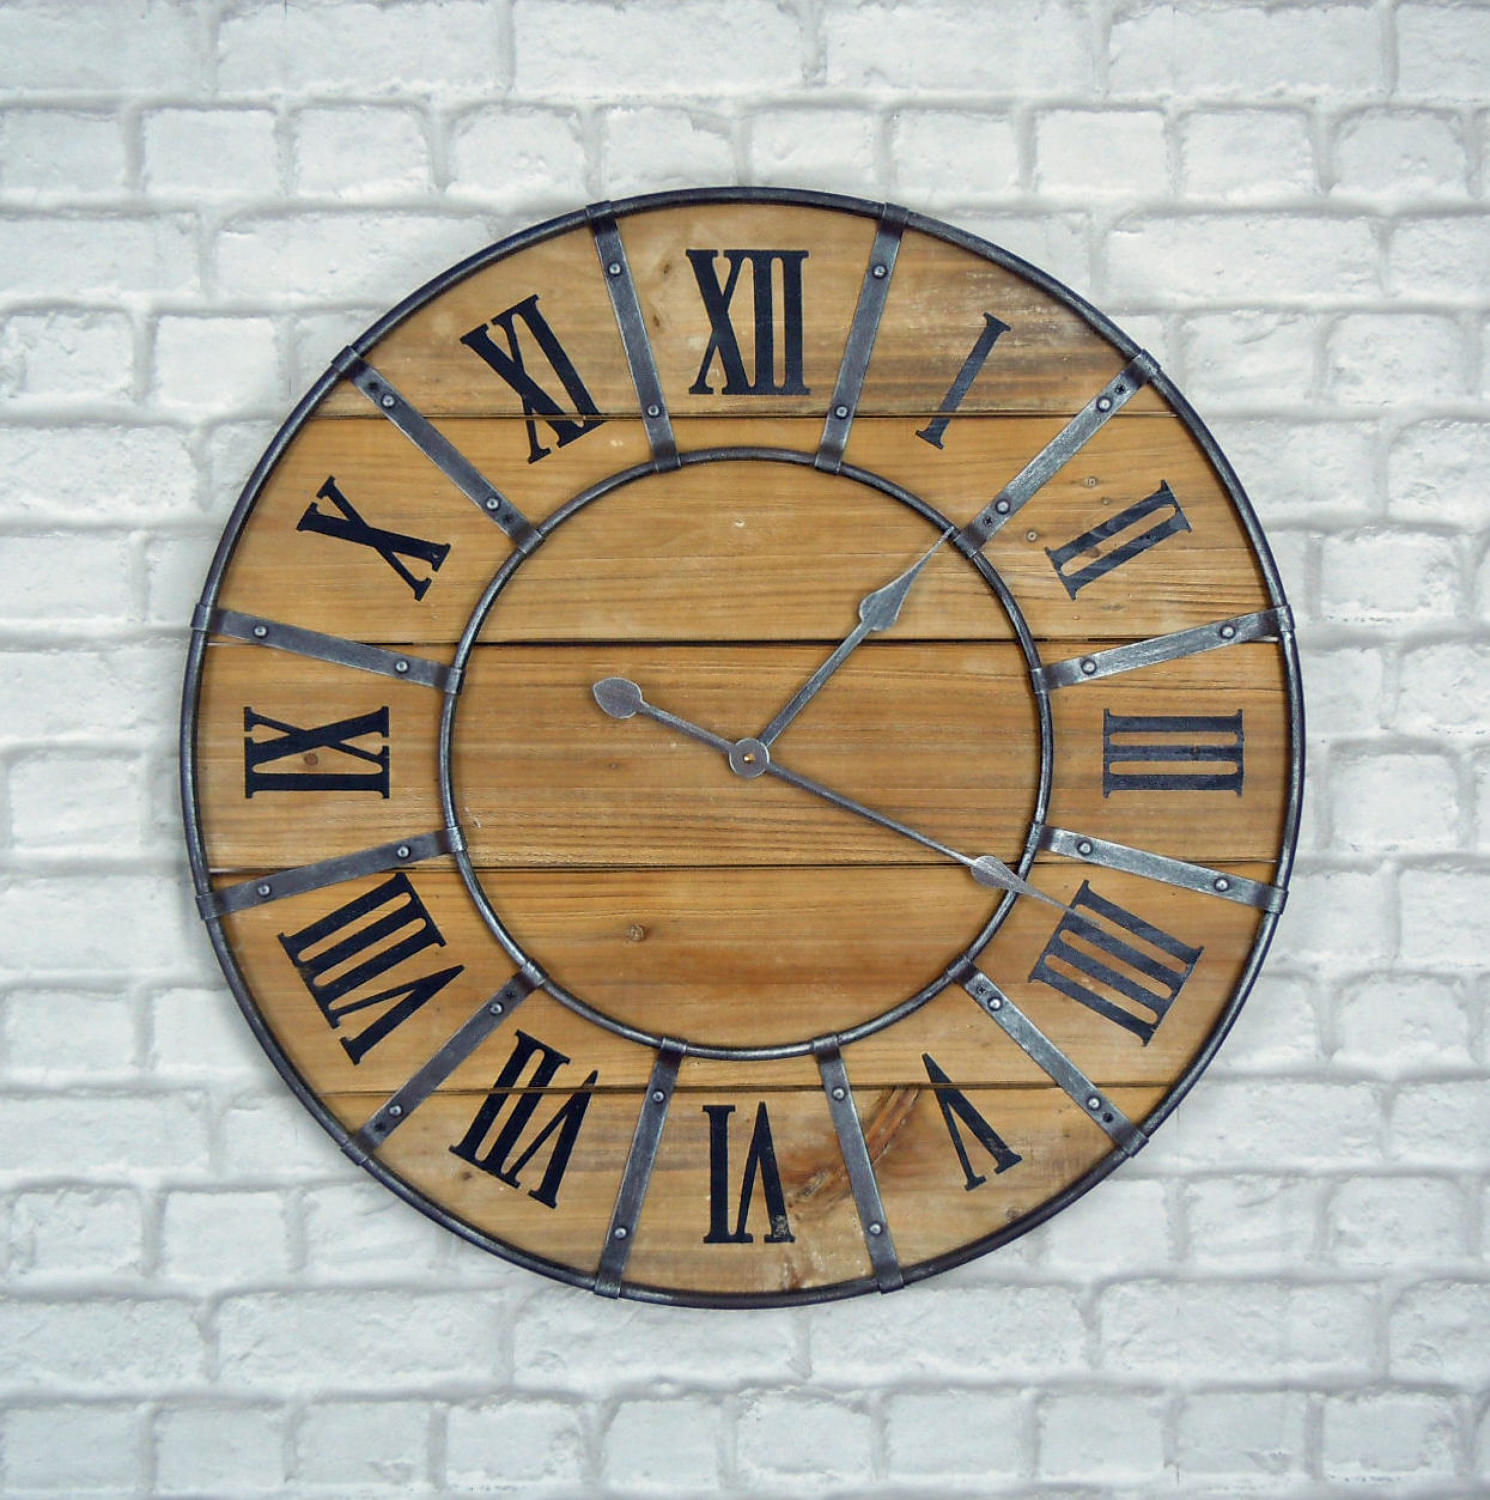 Rustic industrial metal and wood wall clock